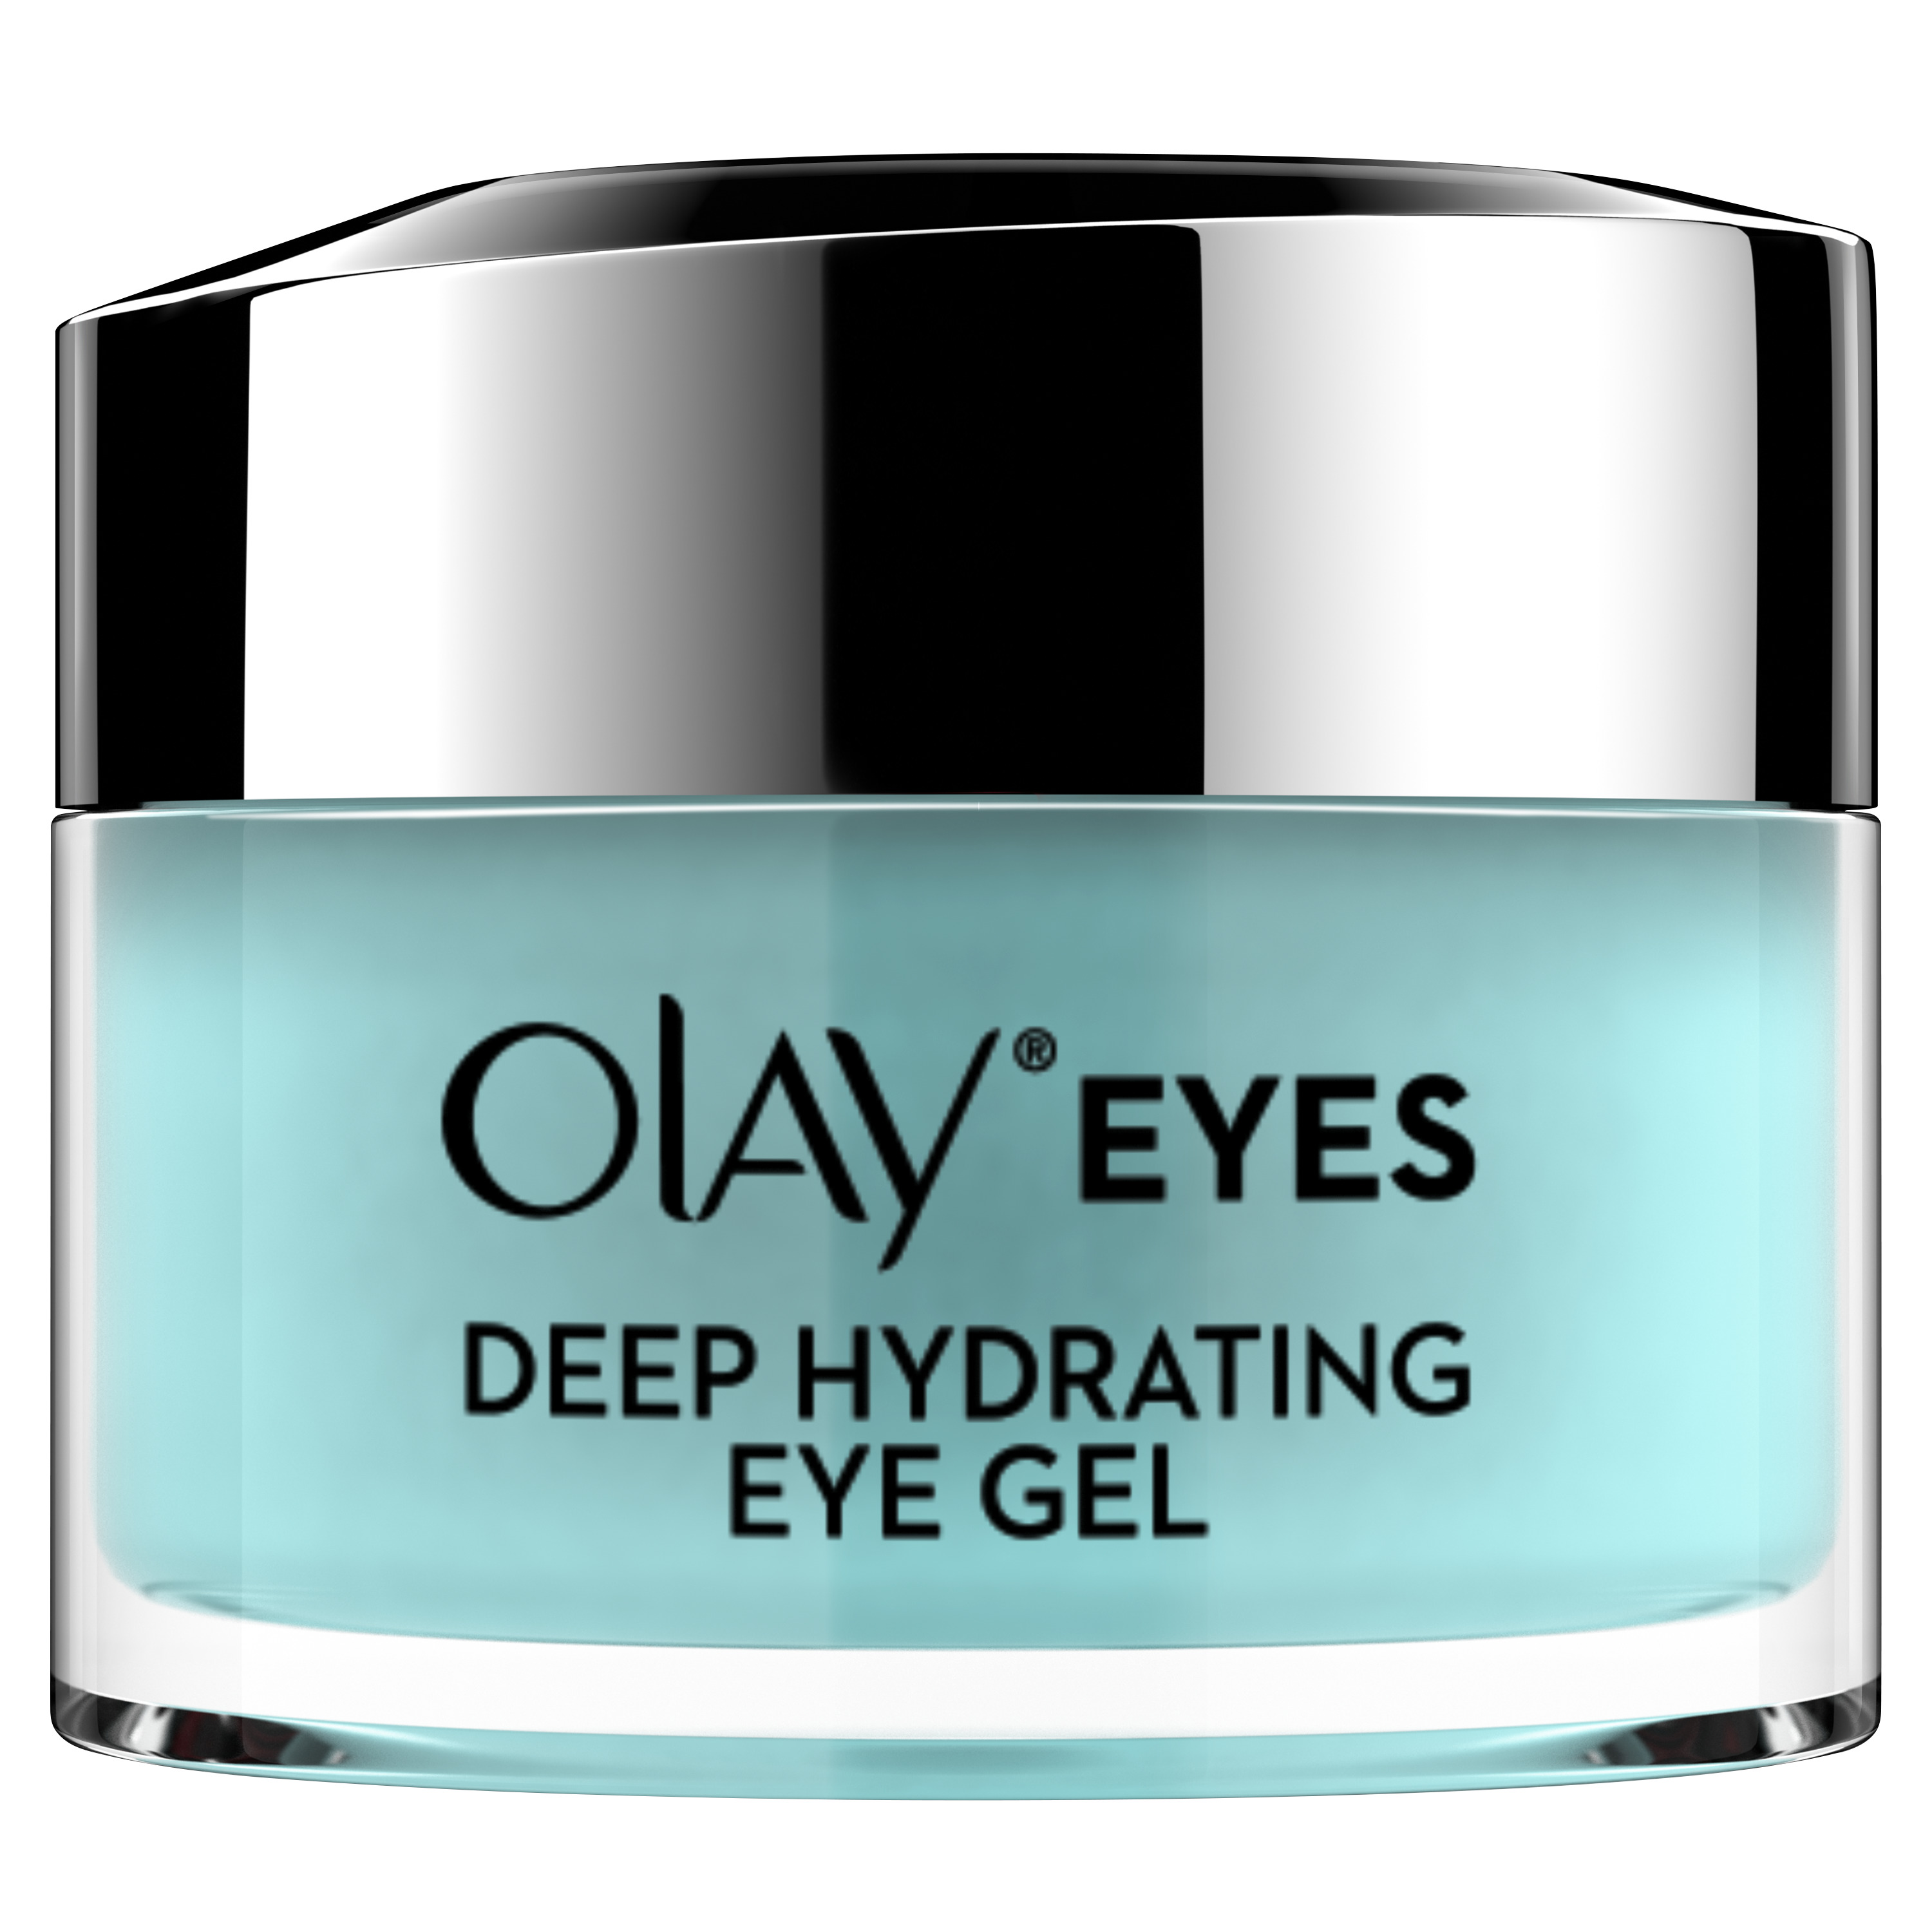 Olay Eyes Deep Hydrating Eye Gel with Hyaluronic Acid ($20 Rebate Available), 0.5 fl oz